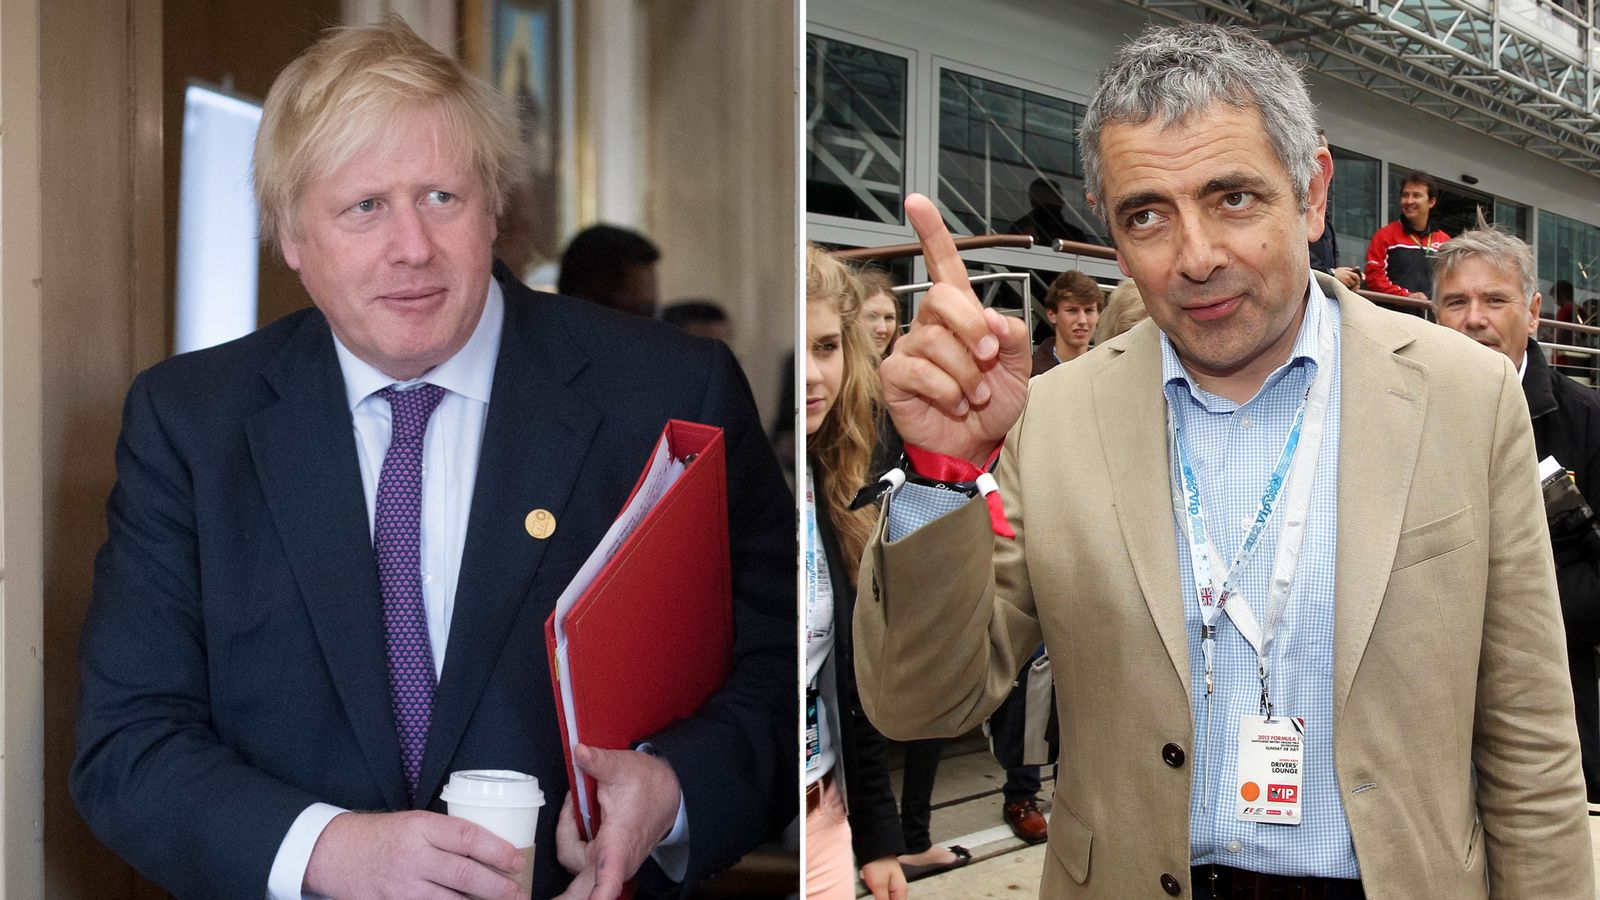 Rowan Atkinson among those leaping to Boris Johnson's defence over burka comments